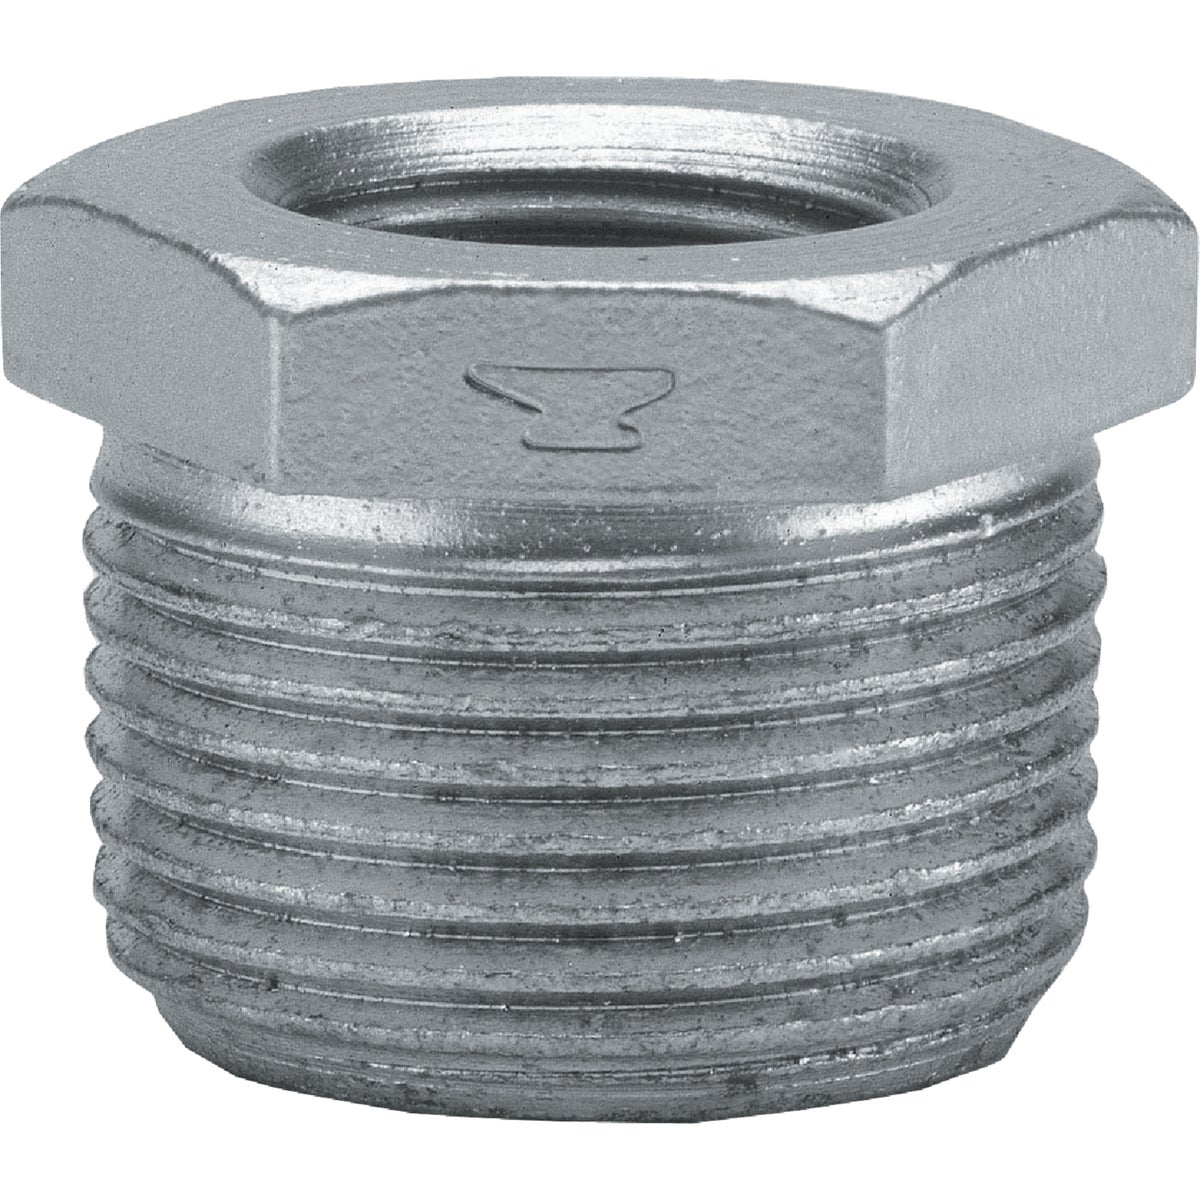 1-1/4X3/4 GALV BUSHING - 8700130951 by Anvil International